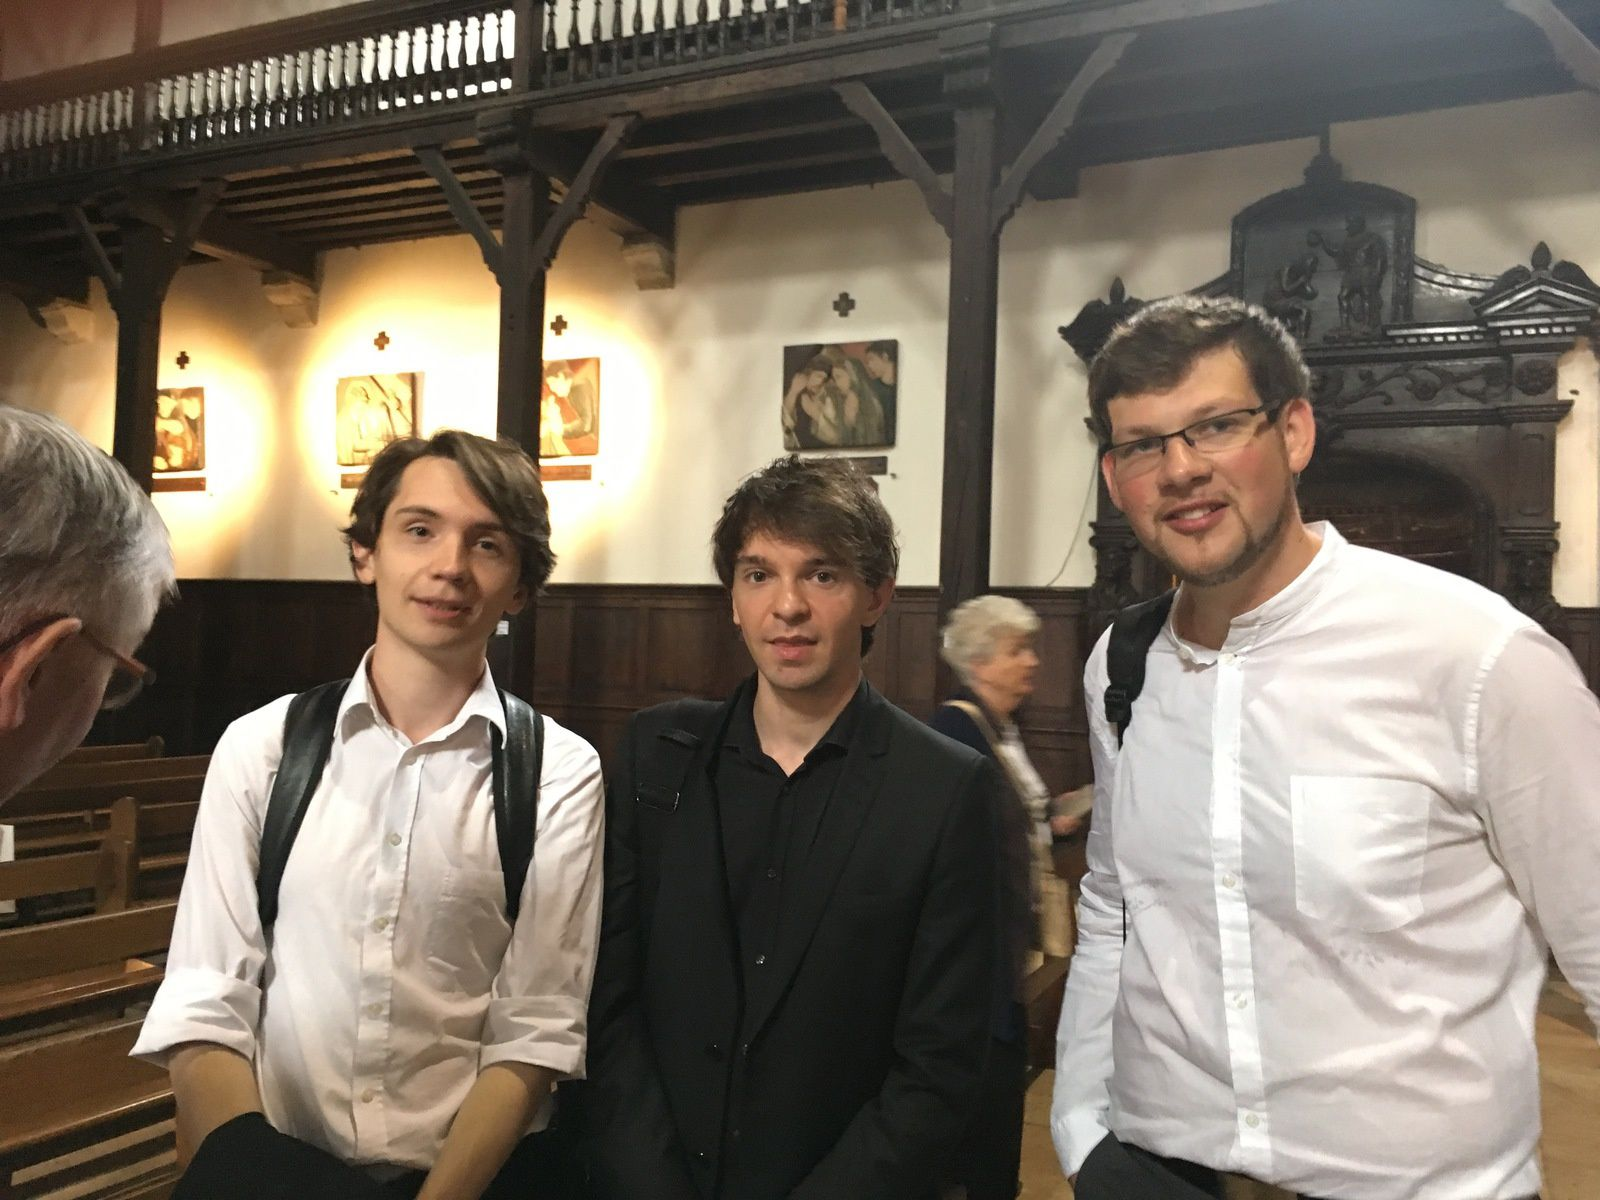 D'excellents jeunes organistes du CNSM de Paris